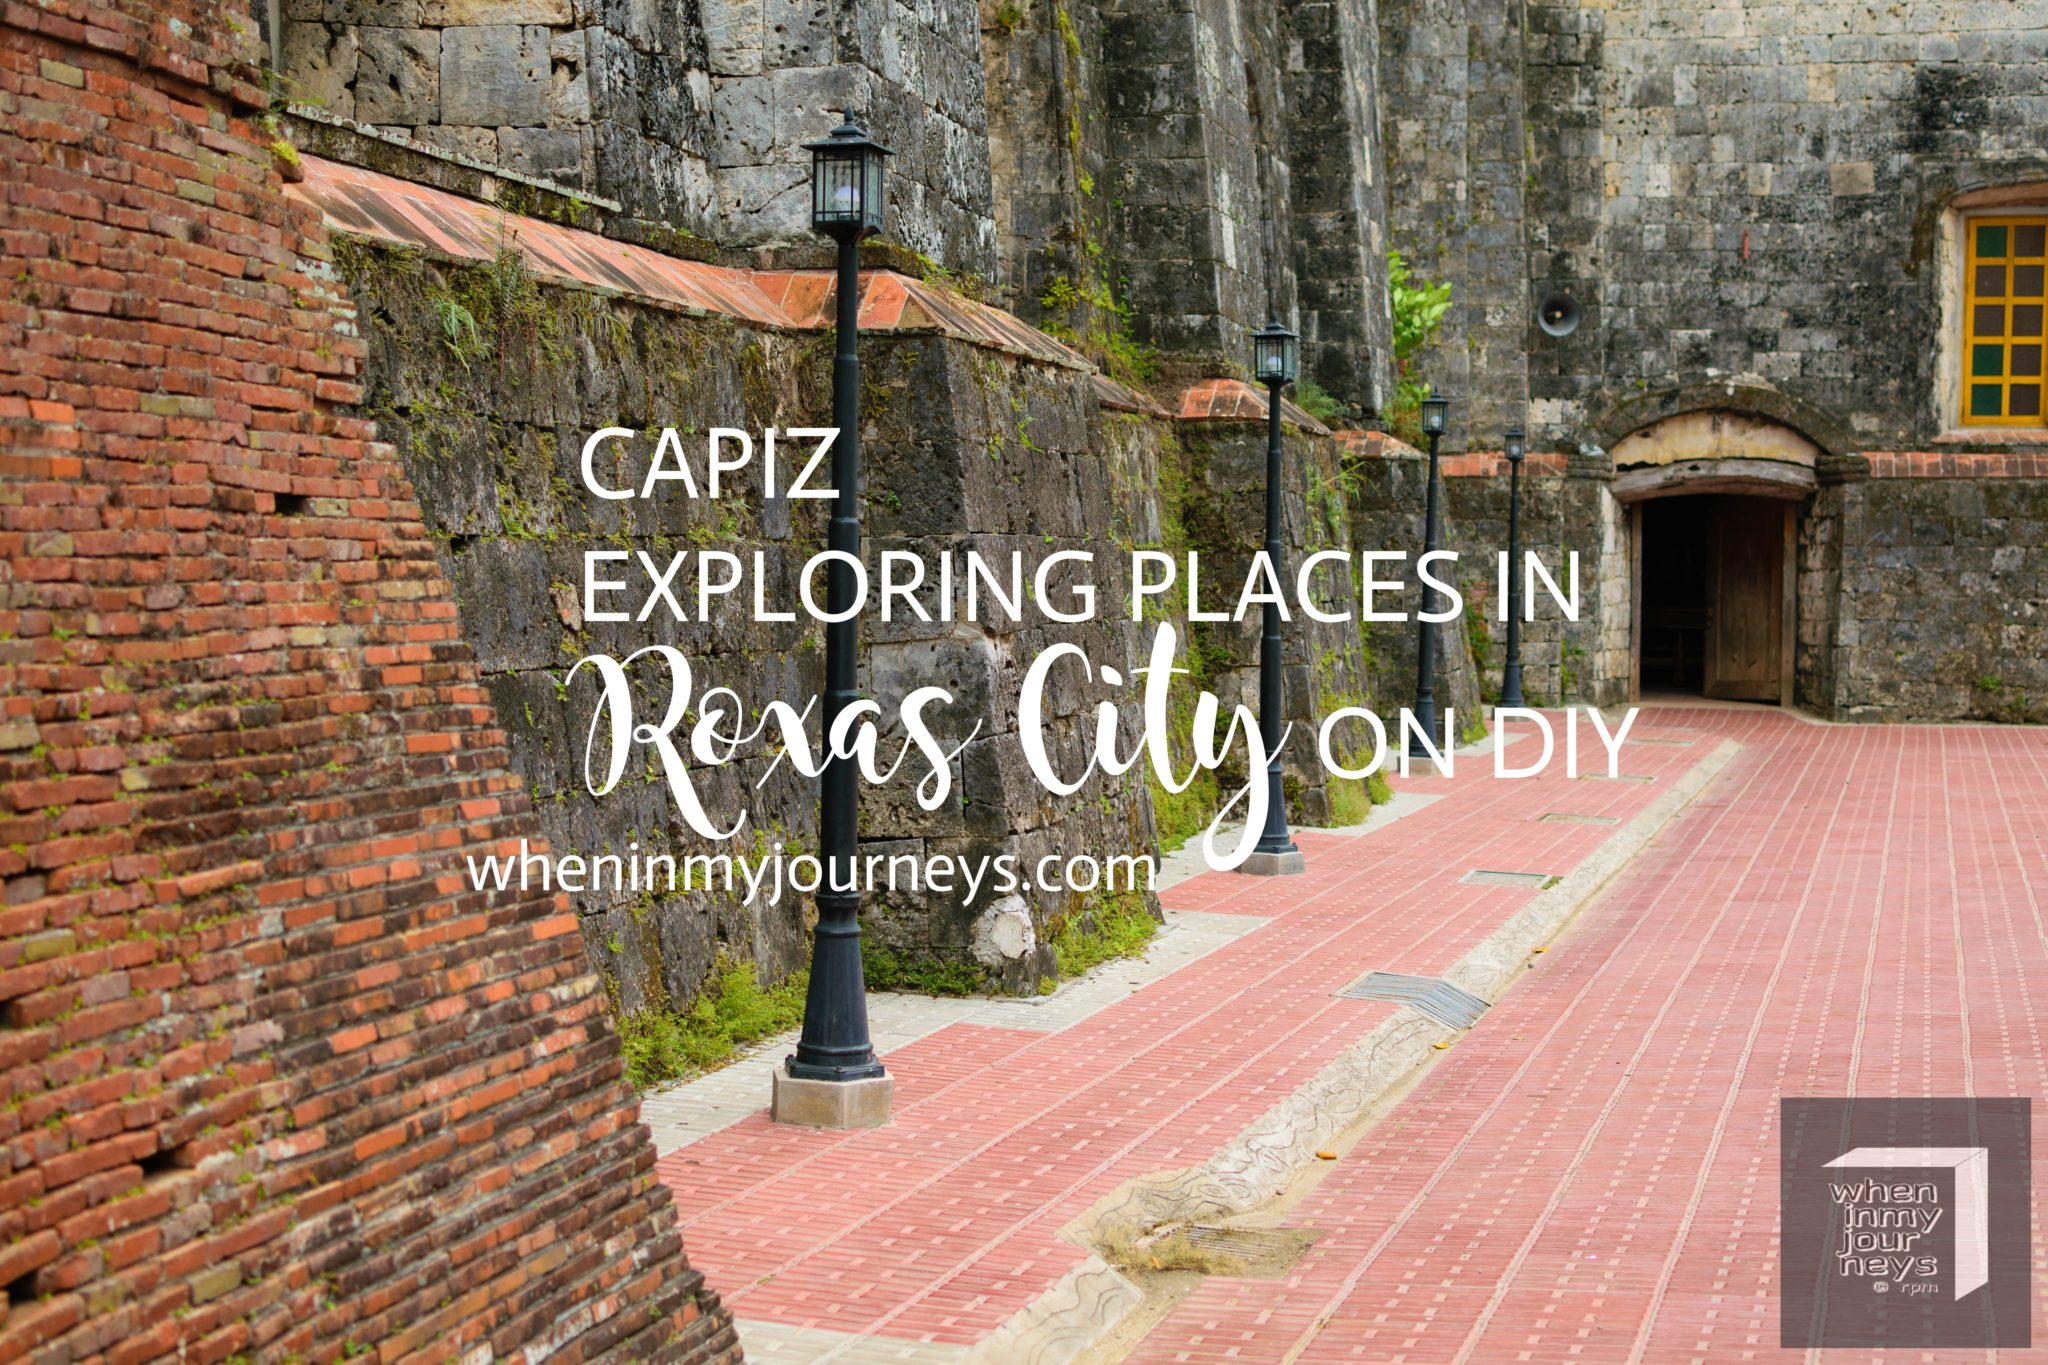 Capiz -Exploring Places in Roxas City on DIY2